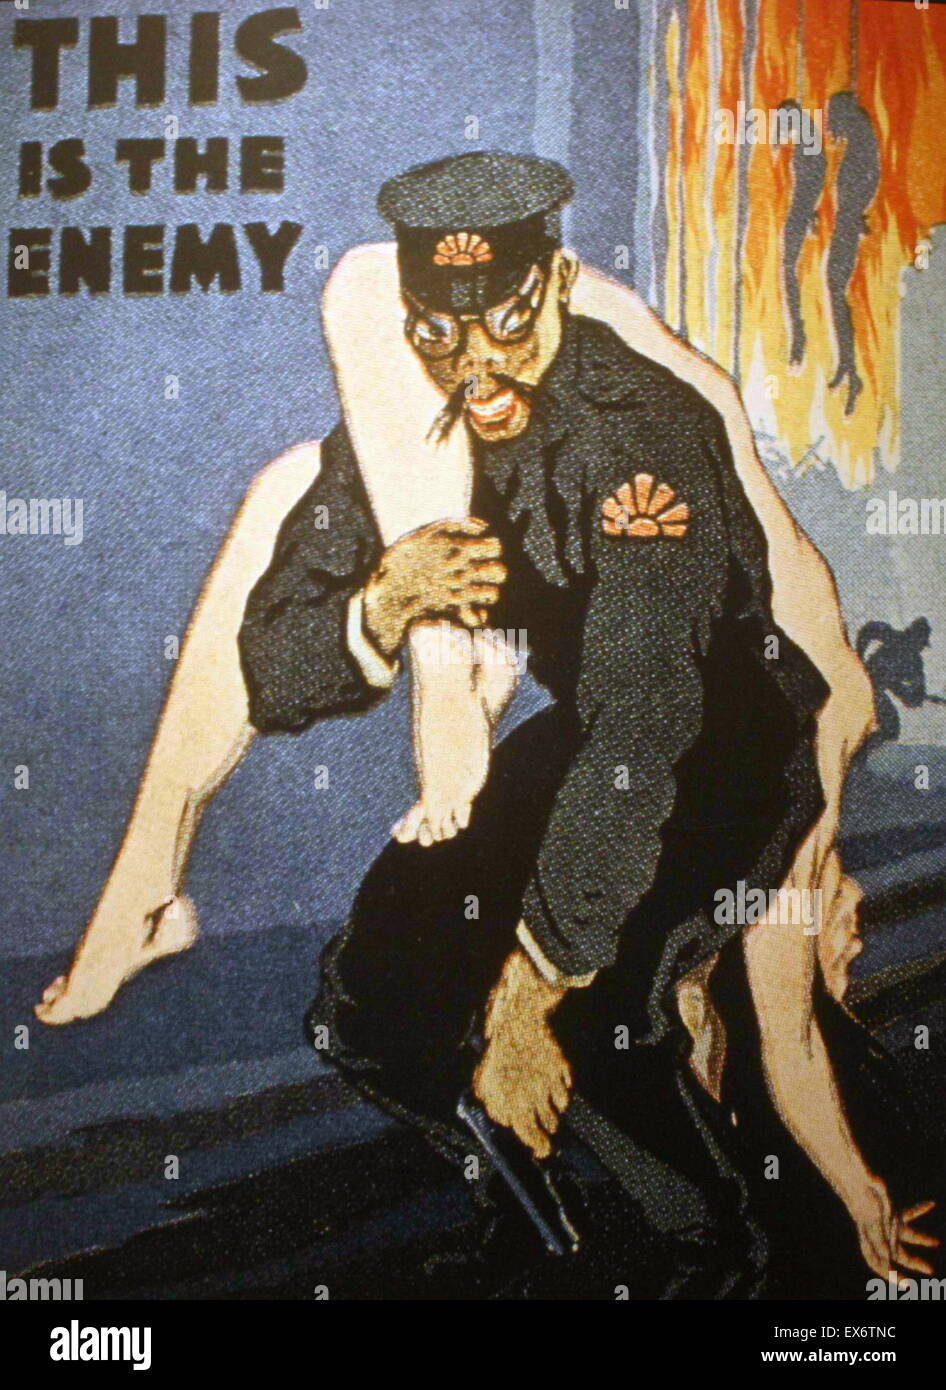 Anti-Japanese propaganda poster 'This is the enemy' 1942 - Stock Image